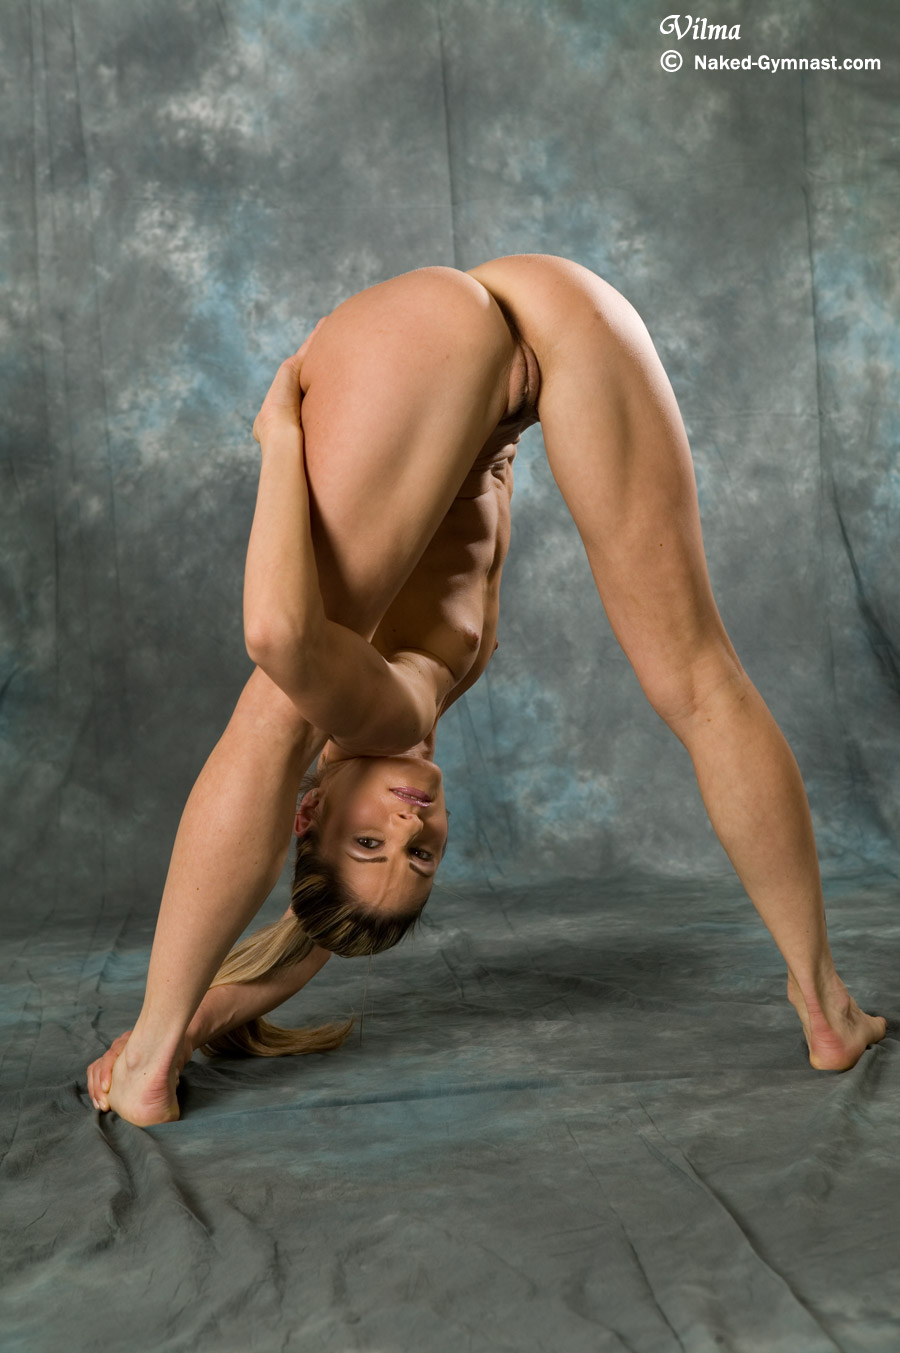 kasey october nude gymnastics ru